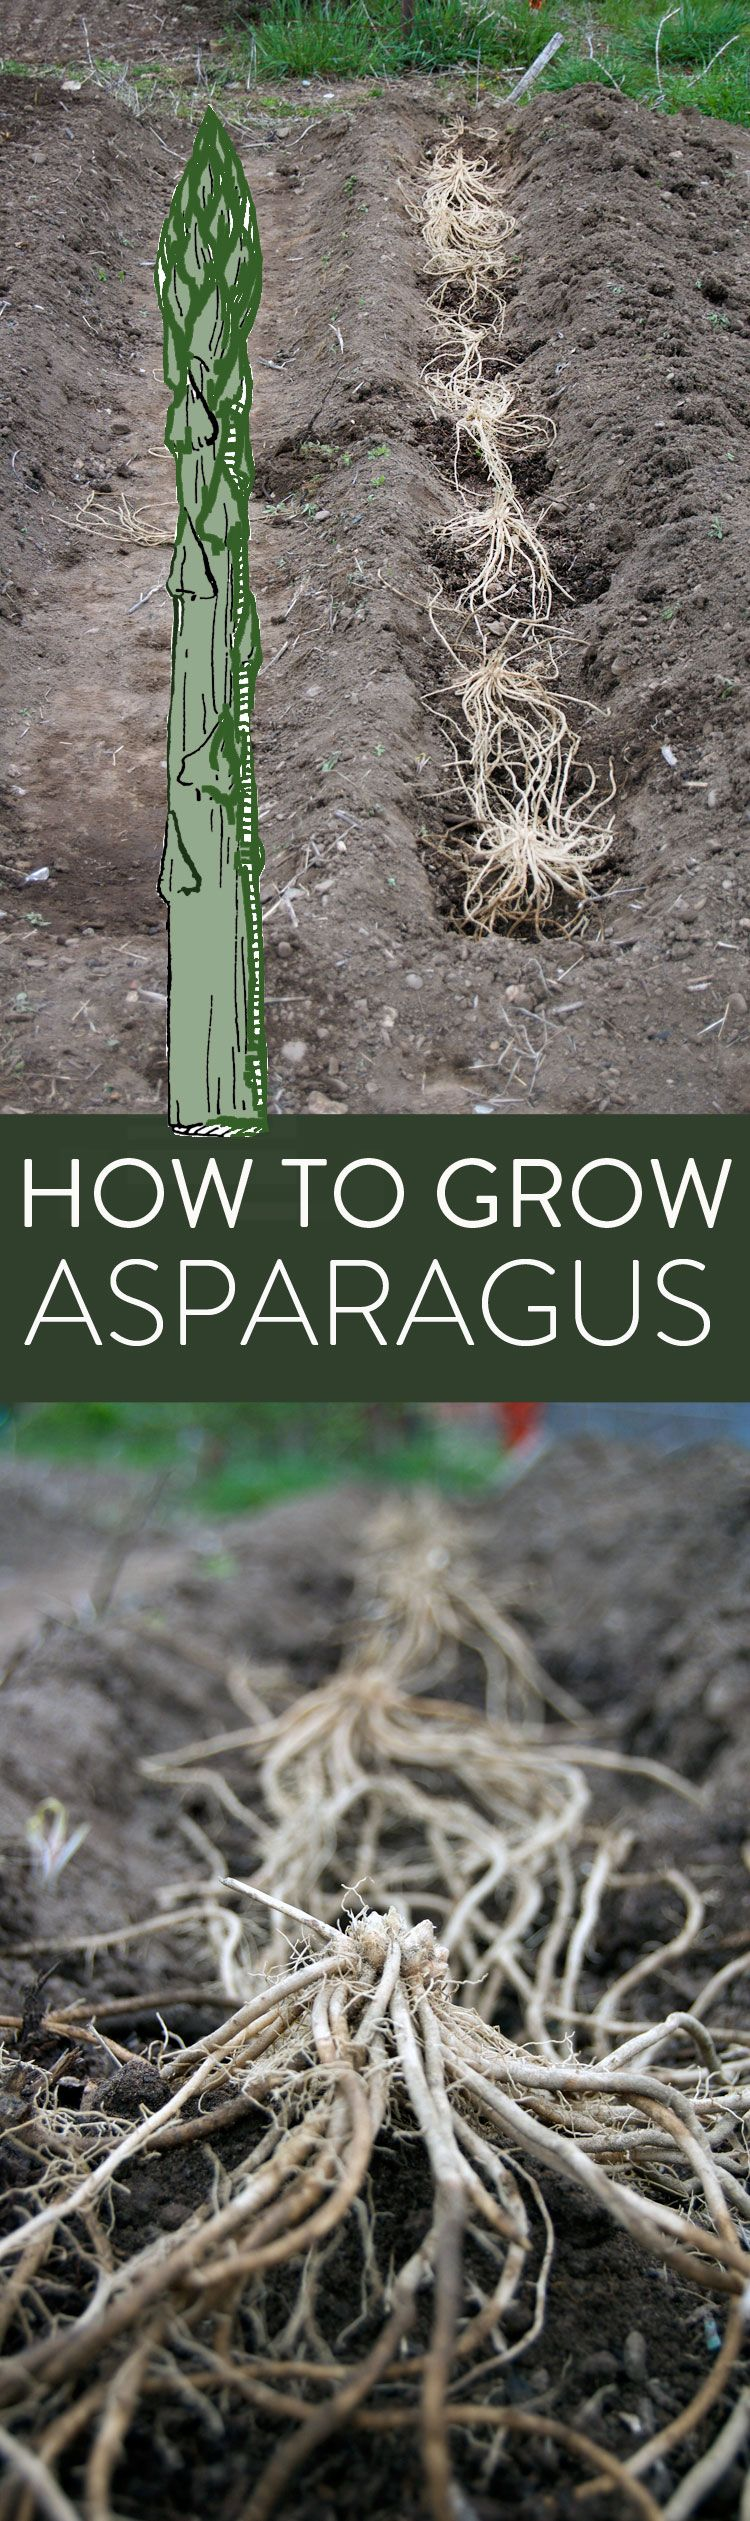 Asparagus Growing Guide Asparagus Hydroponic Gardening 400 x 300